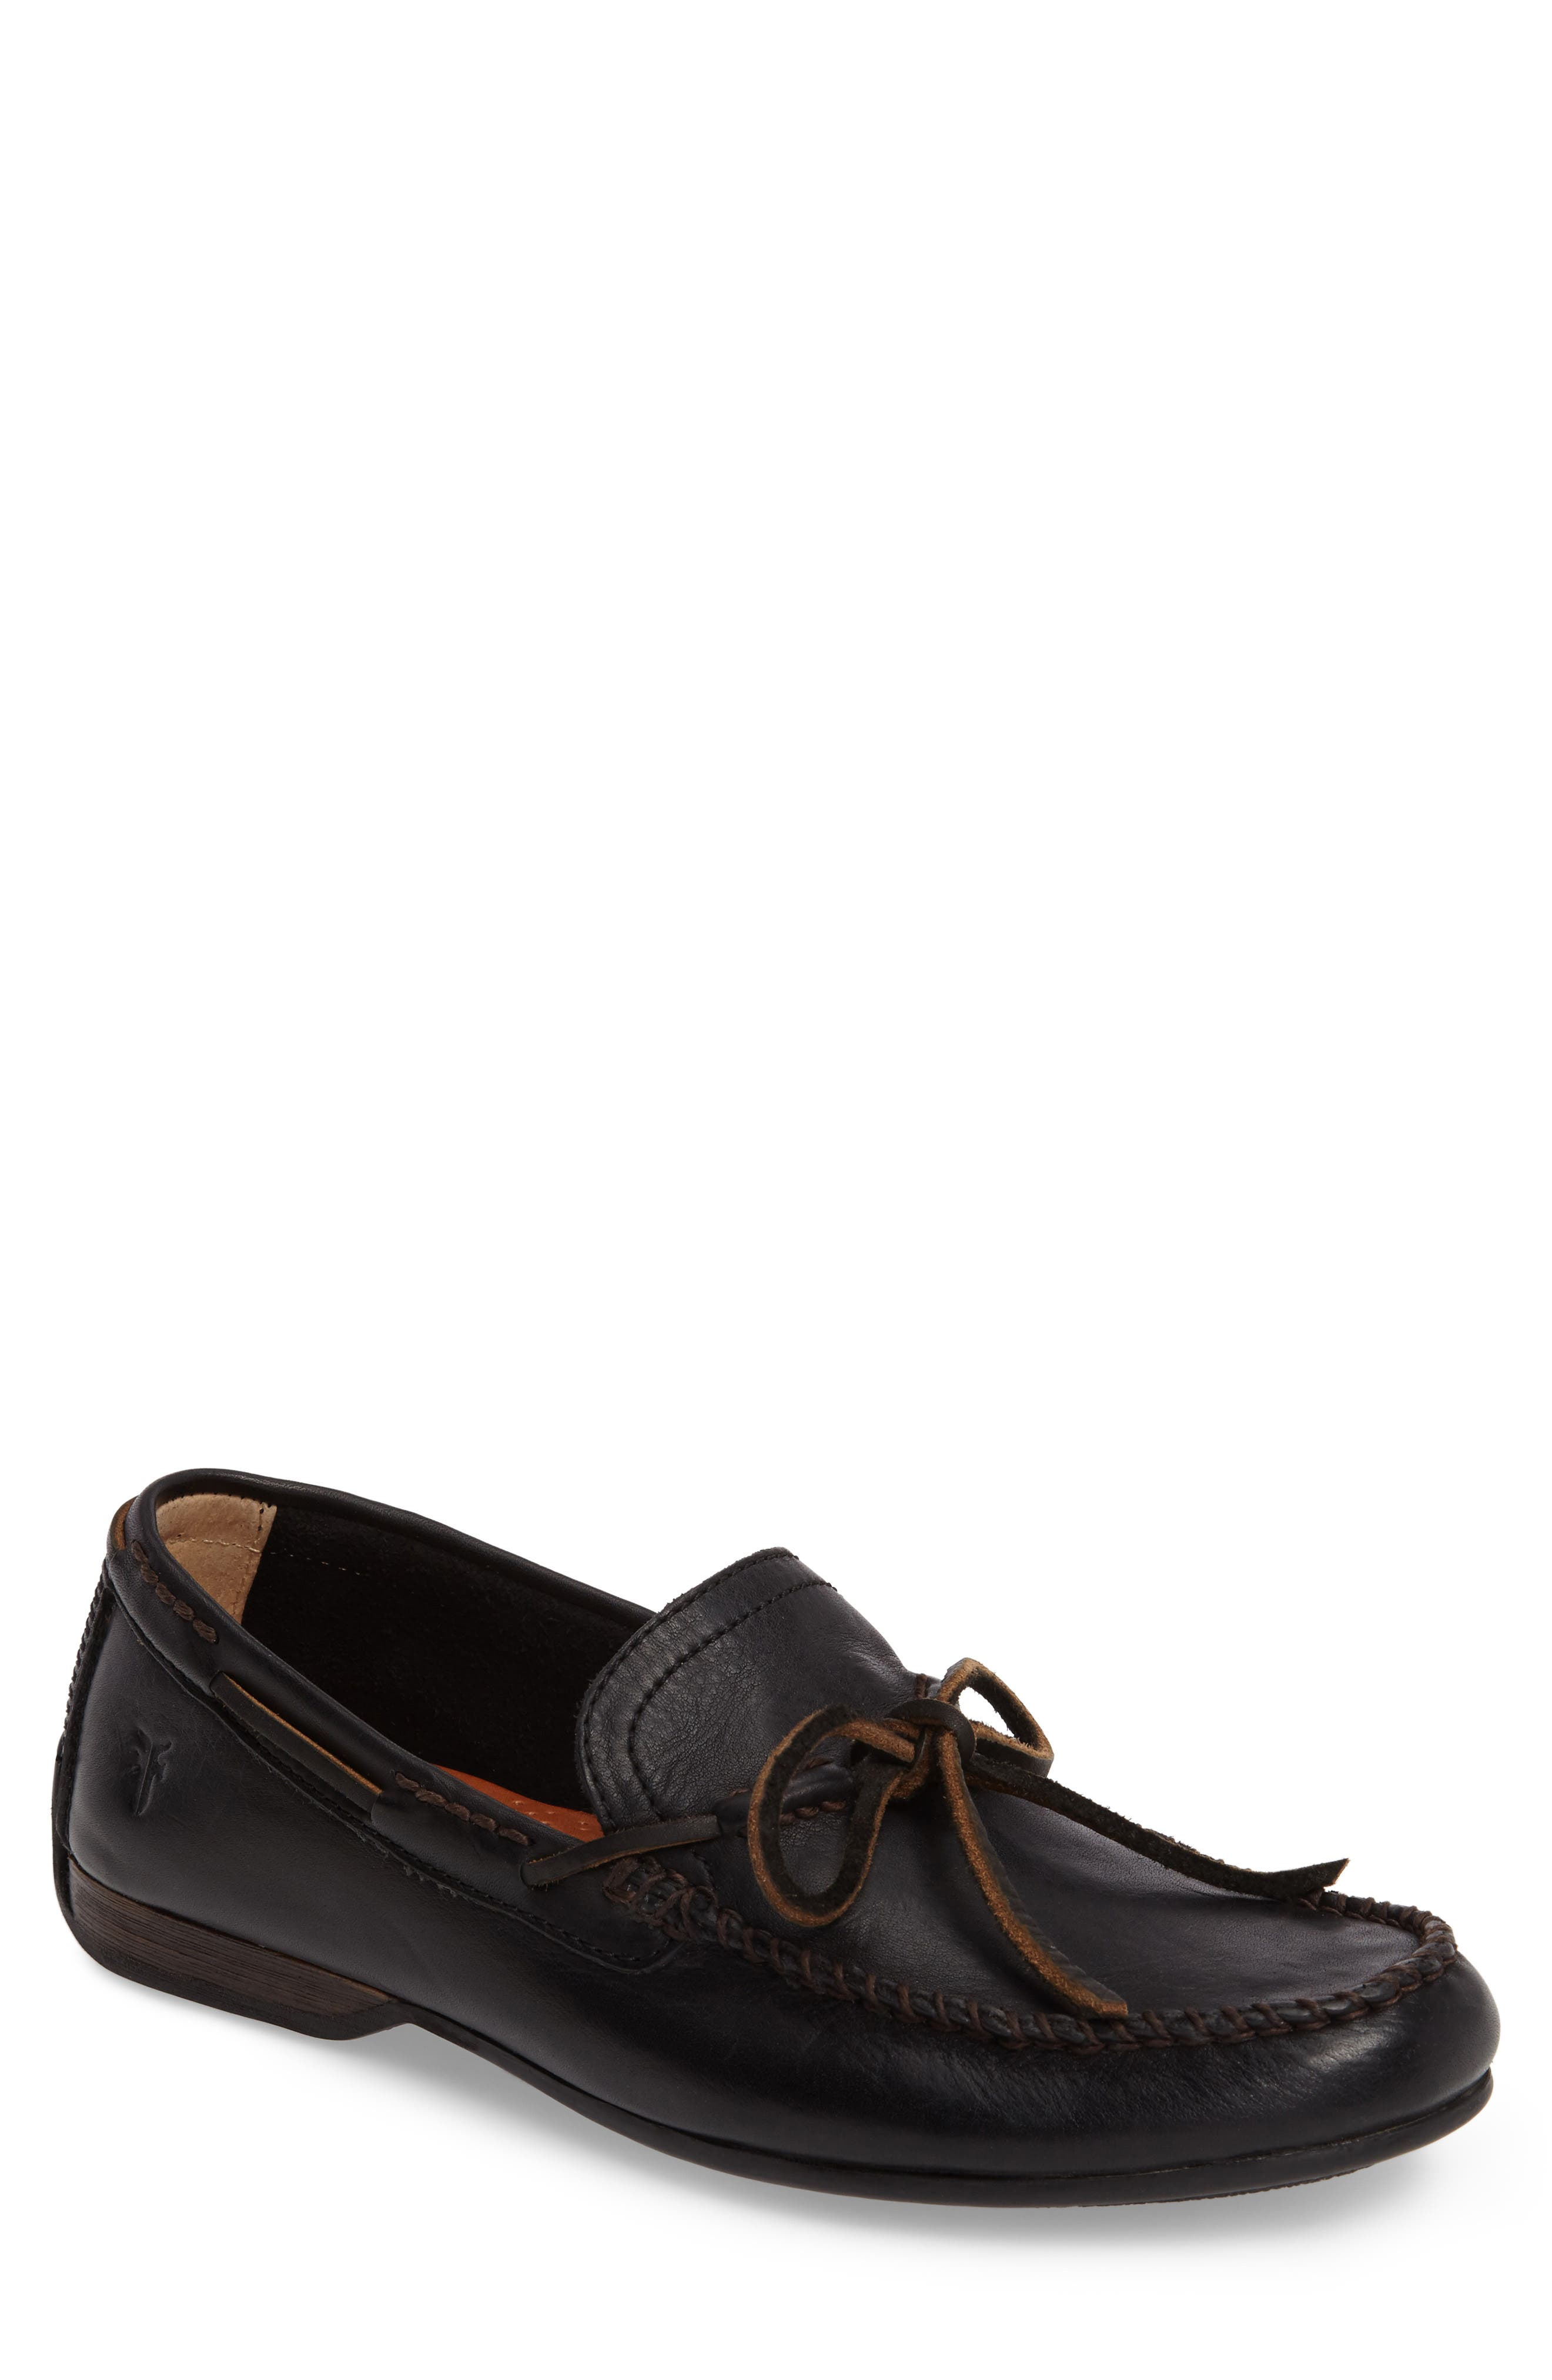 'Lewis' Loafer,                             Main thumbnail 1, color,                             001